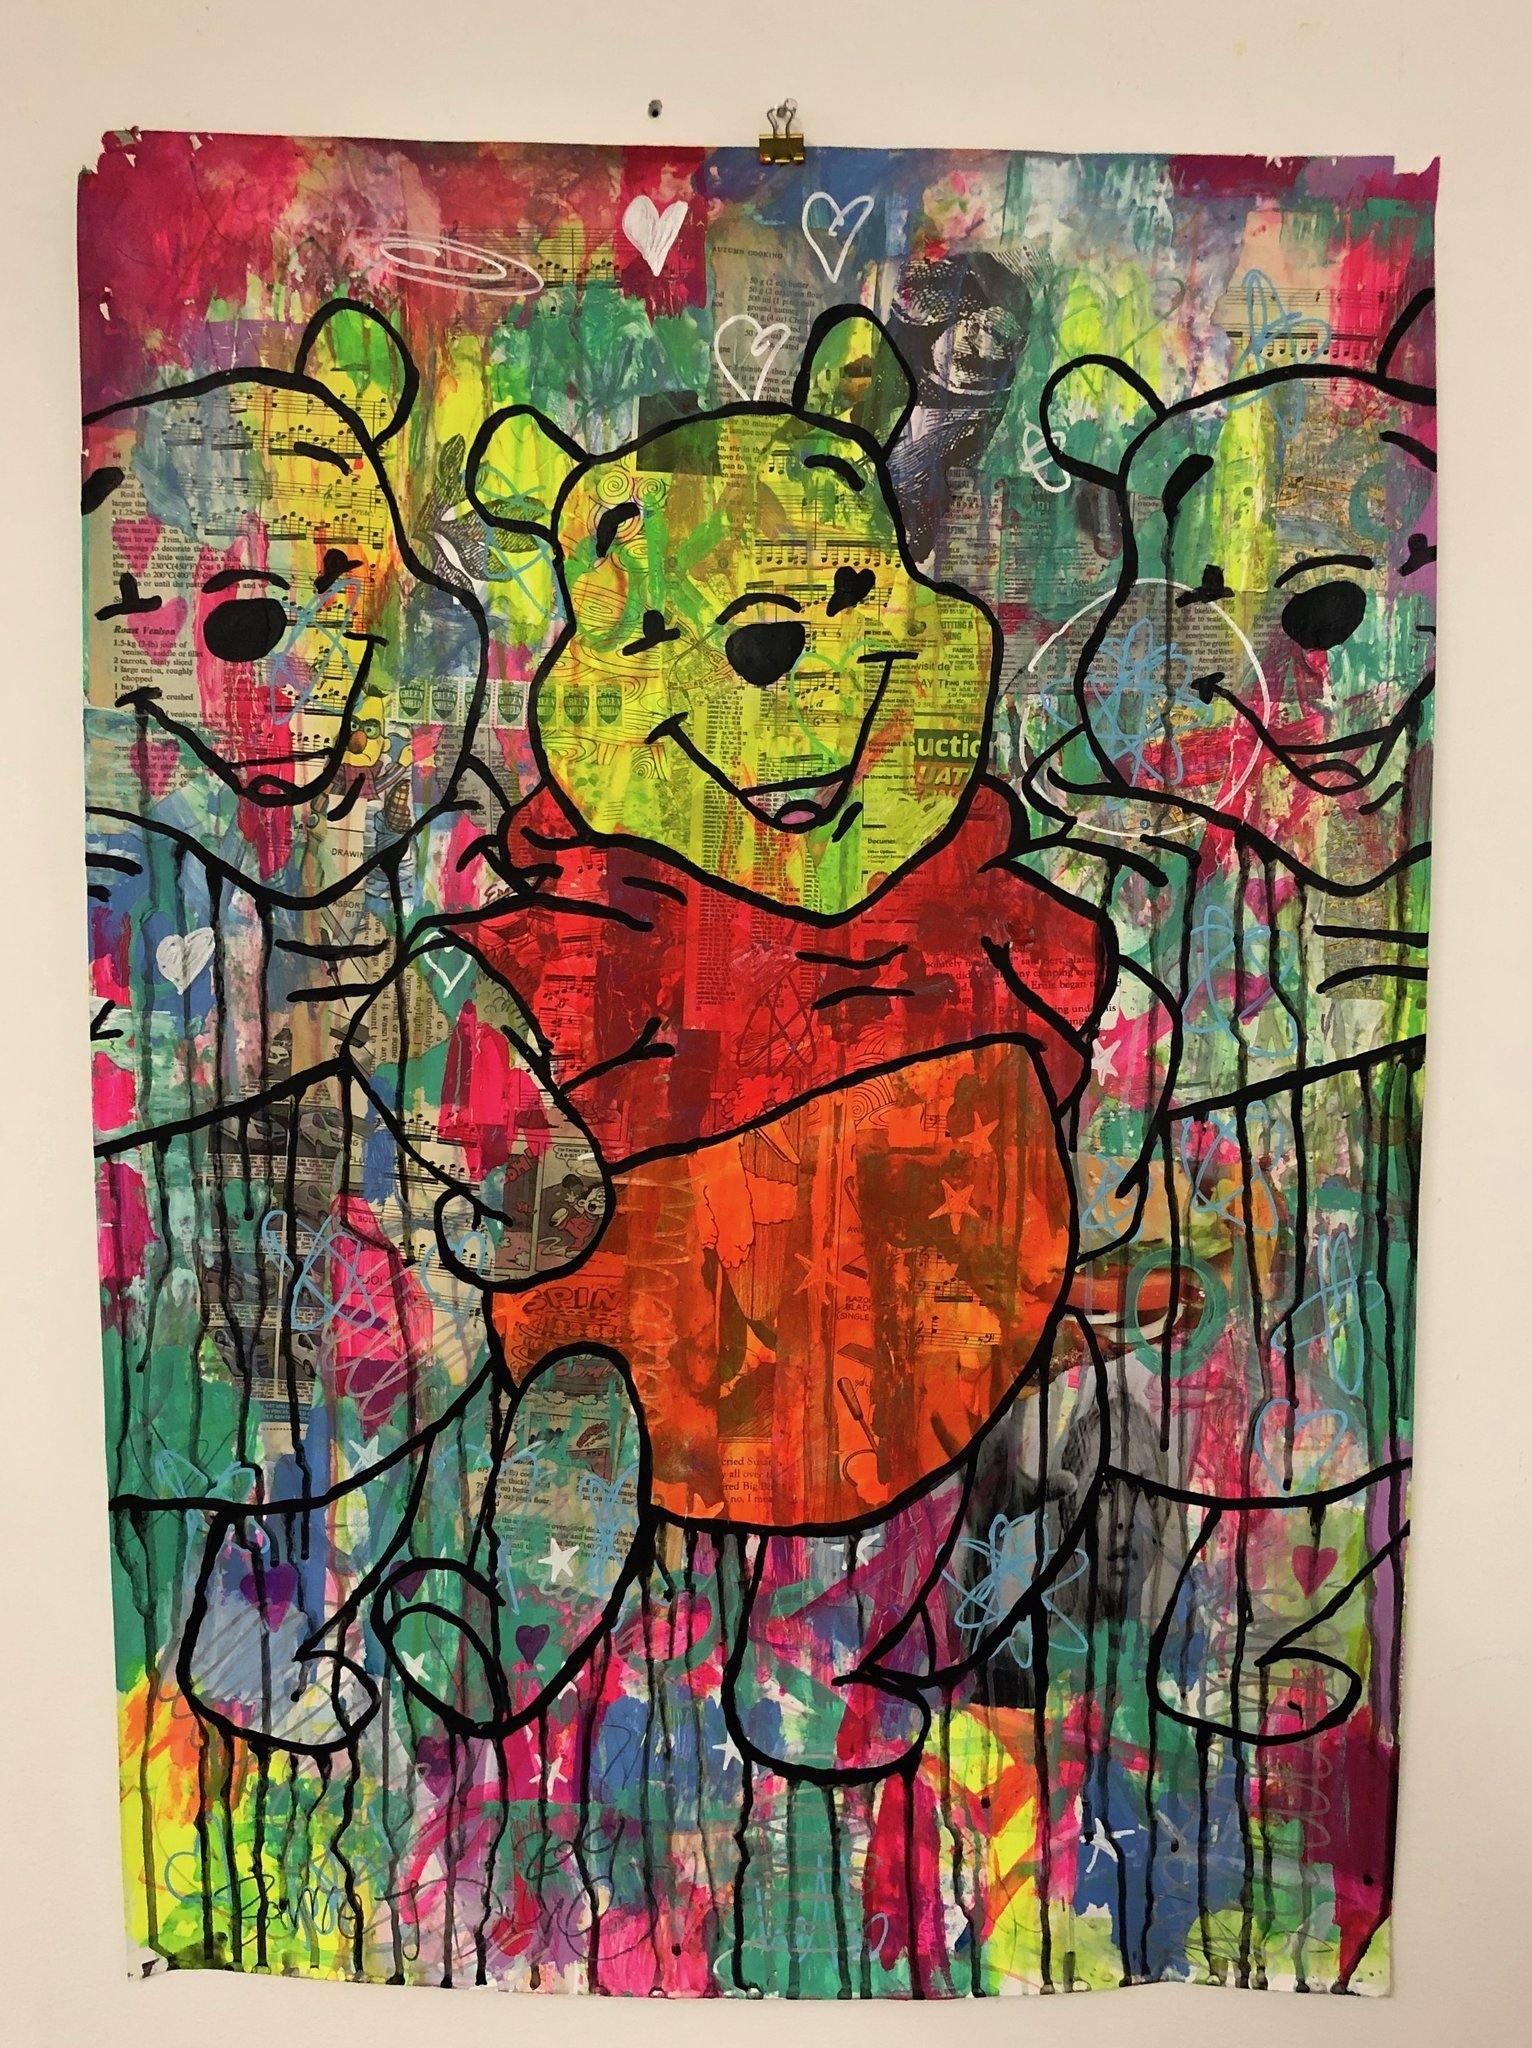 Bear Market by Barrie J Davies 2019, Mixed media on Paper (unframed) A1 size 59cm x 84cm. Barrie J Davies is an Artist - Pop Art and Street art inspired Artist based in Brighton England UK - Pop Art Paintings, Street Art Prints & Editions available.